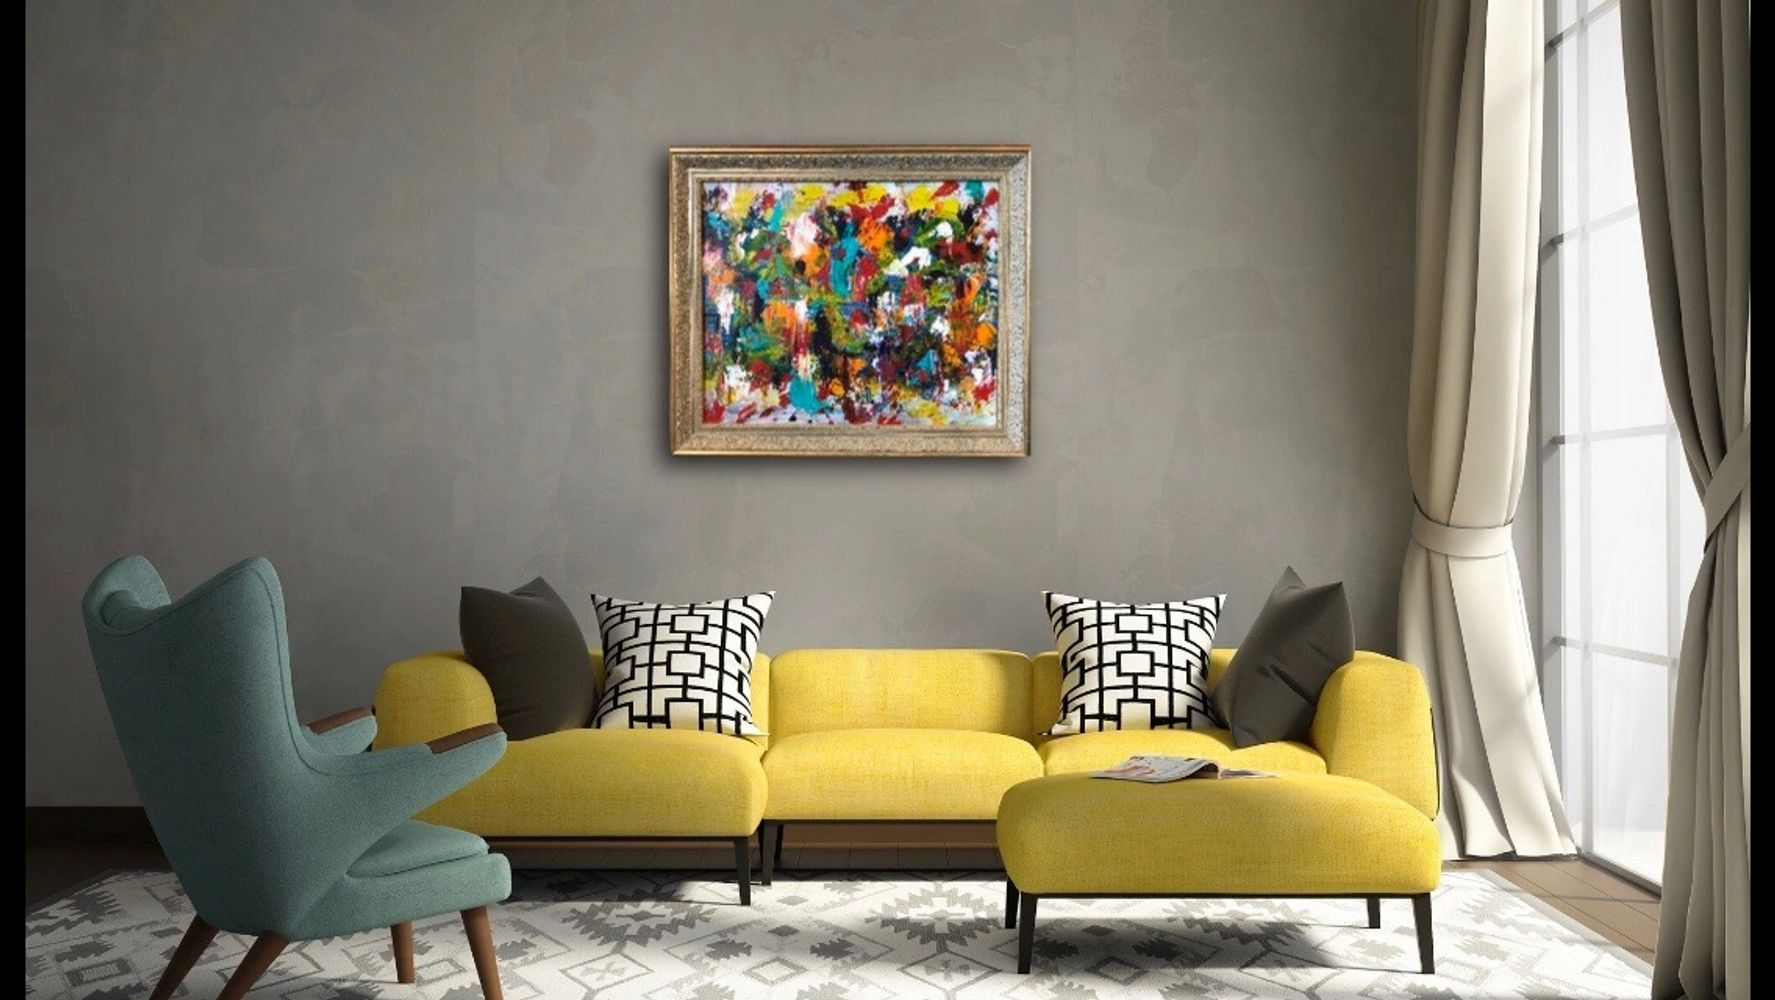 Framed Mediterranean Painting  by Noora Elkoussy set in an interior design setting.